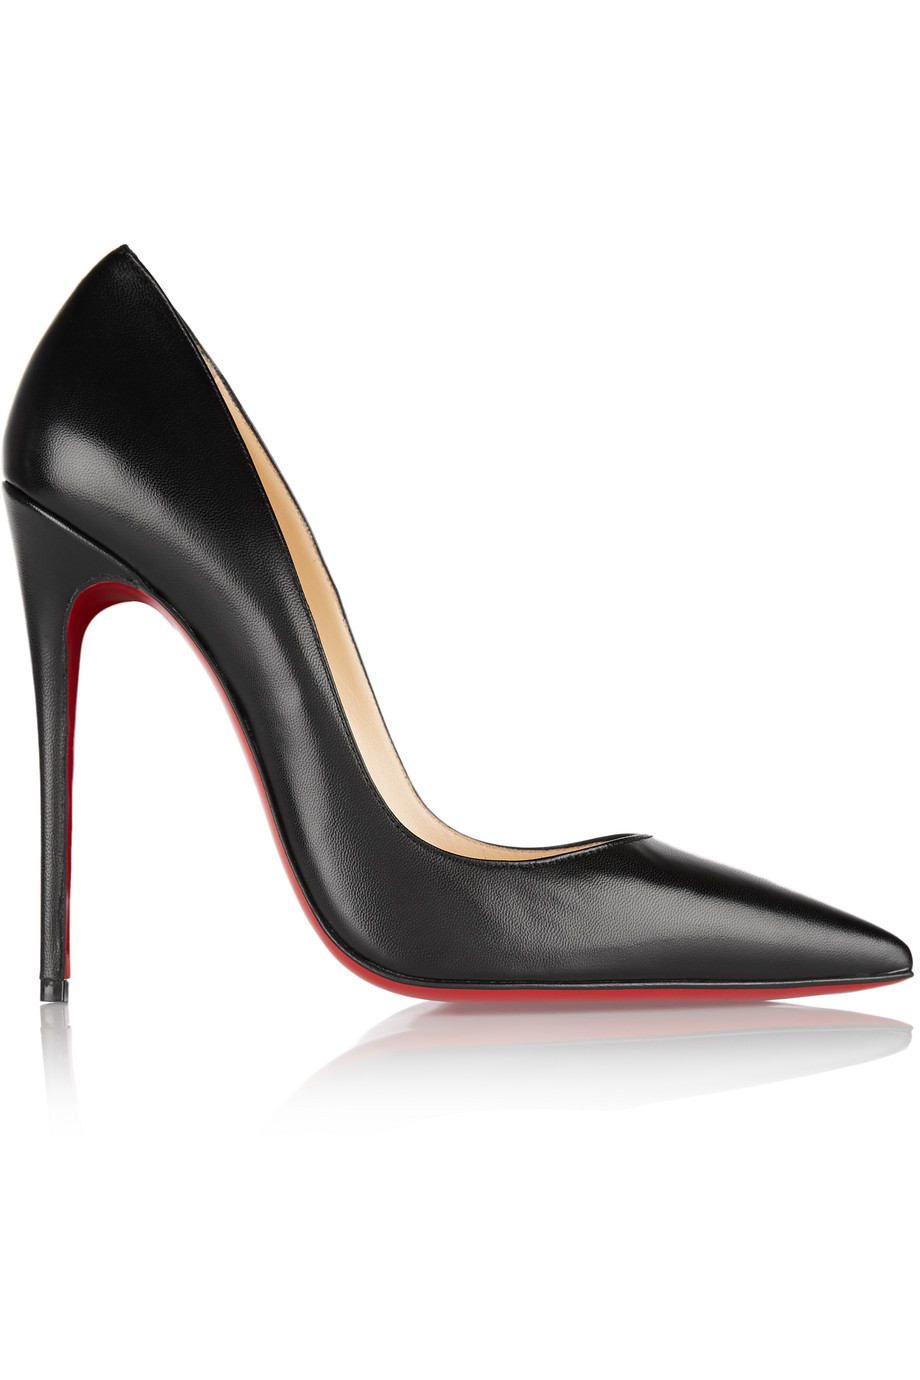 Christian Louboutin So Kate 120 Leather Pumps, Black, Women's US Size: 5, Size: 35.5